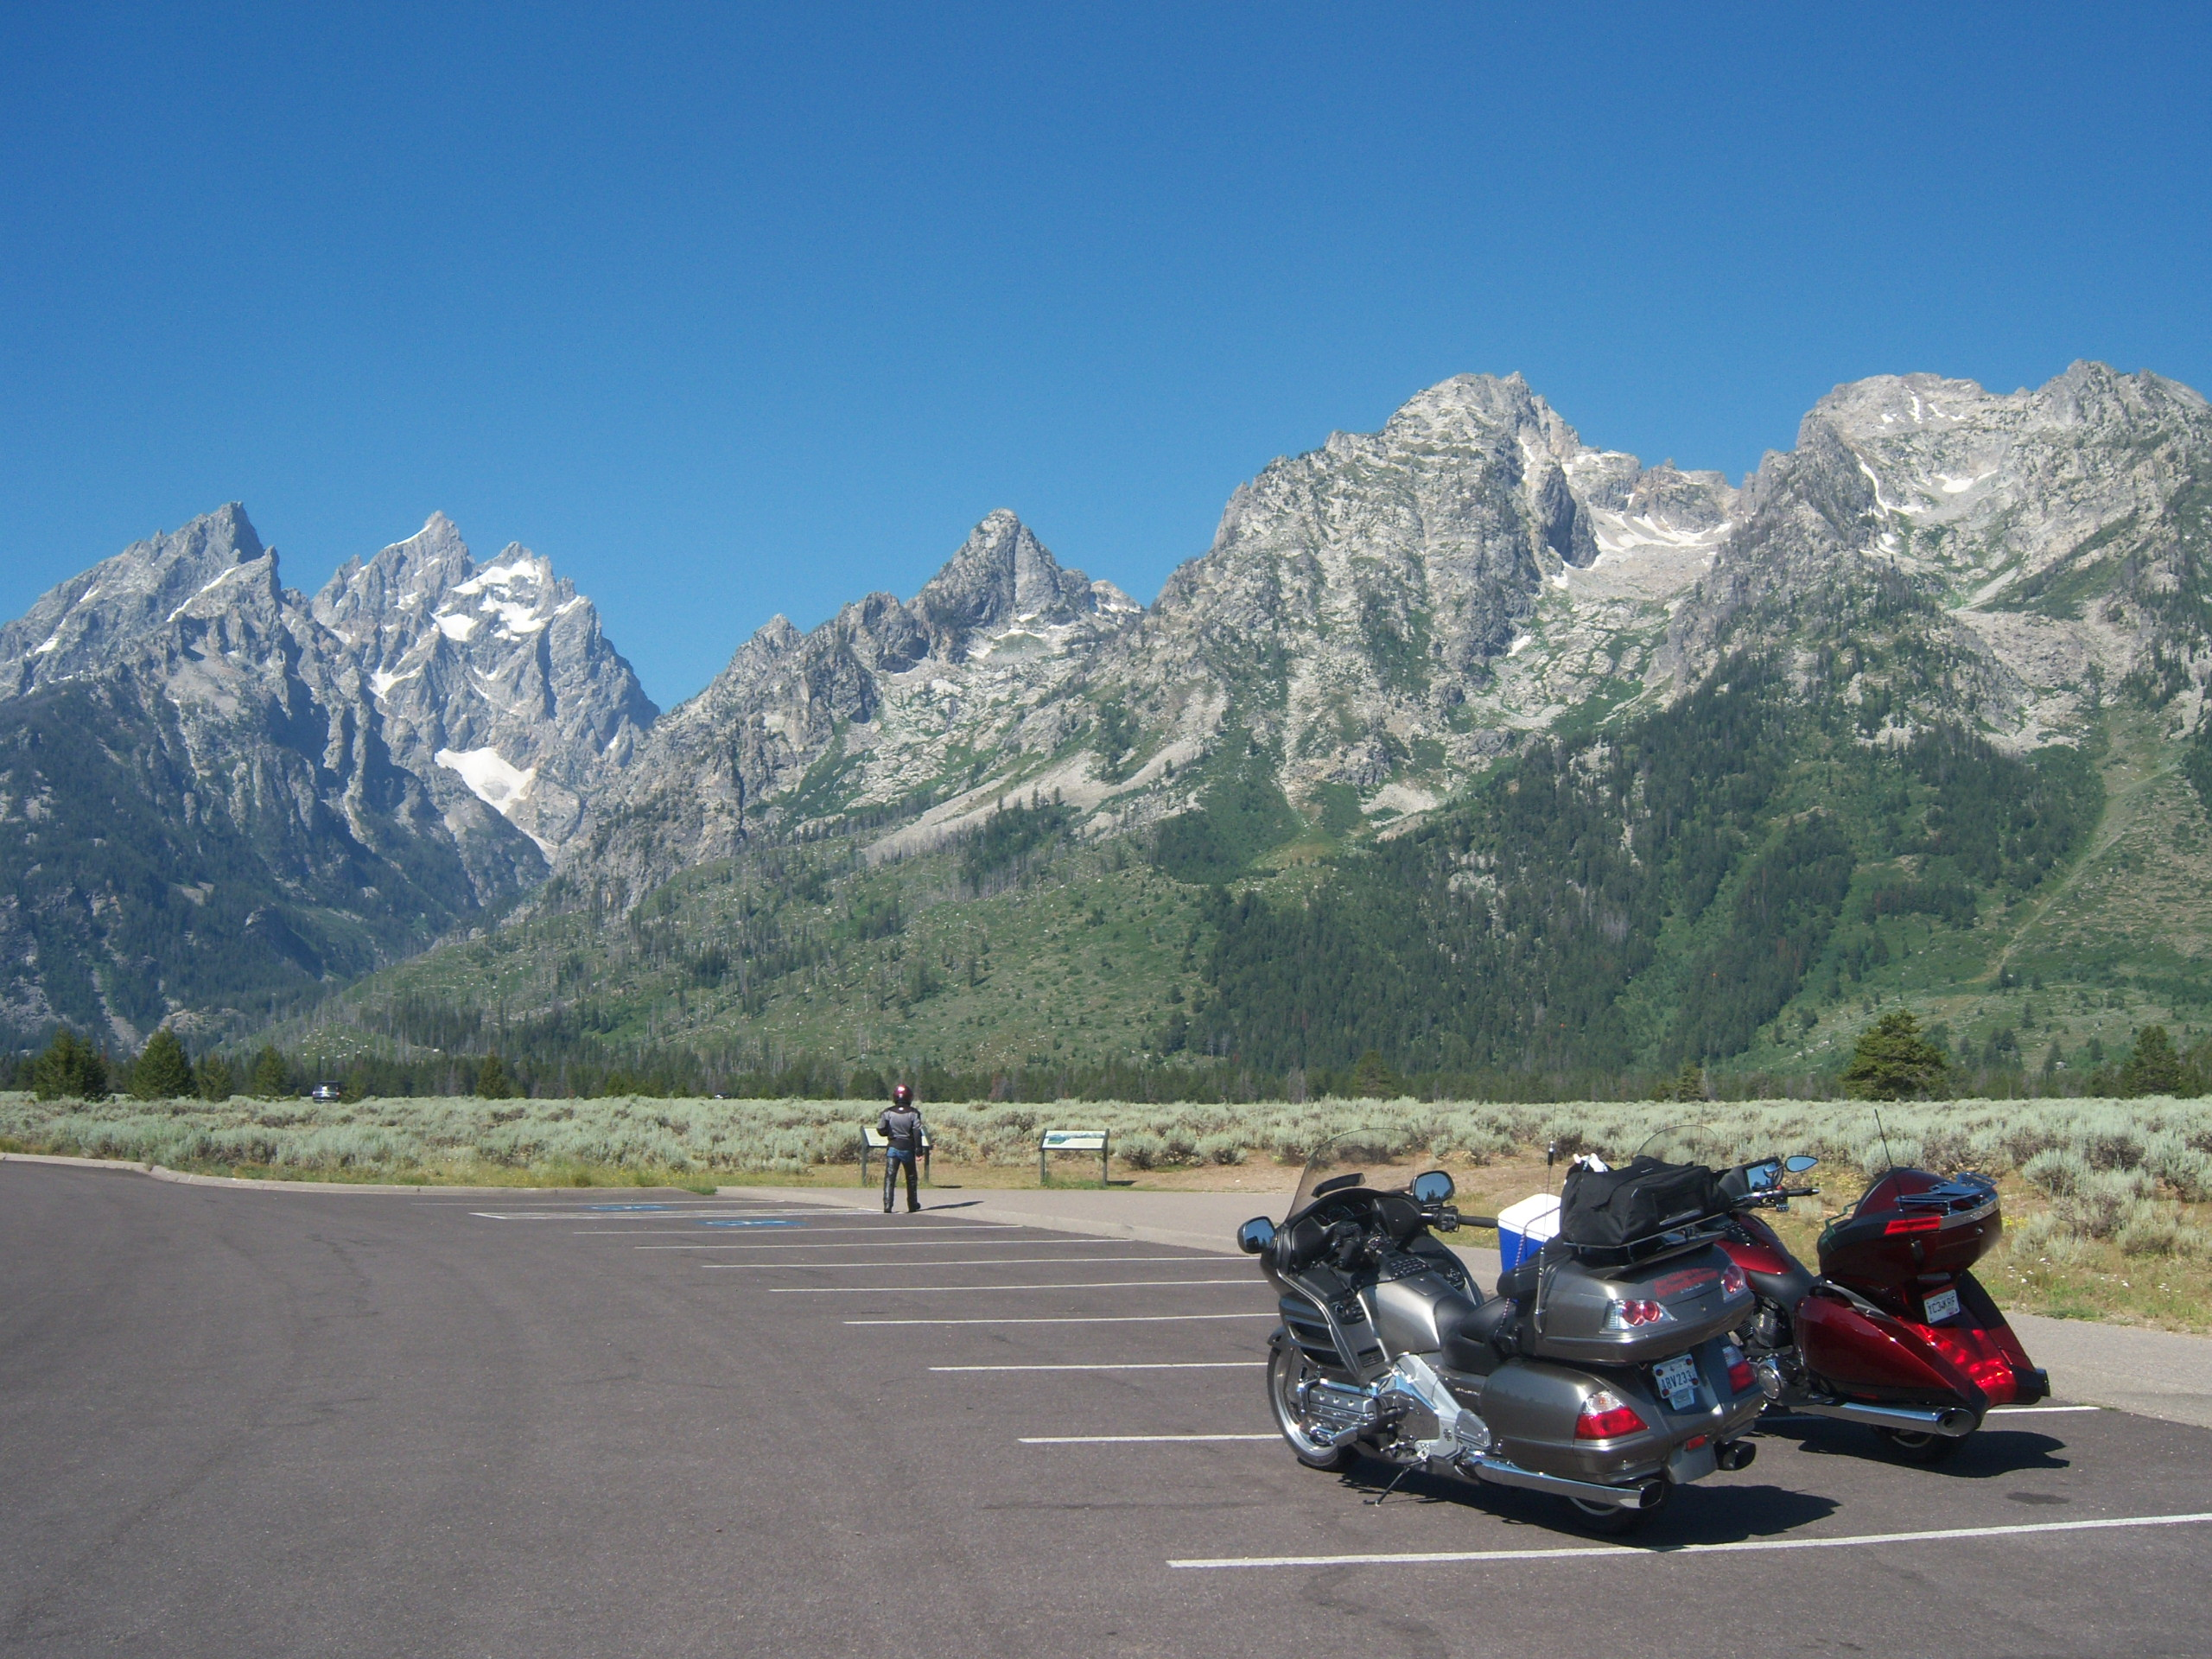 national parks, motorcycle, ride, travel, adventure, motorcycle touring, motorcycle travel, motorcycle ride